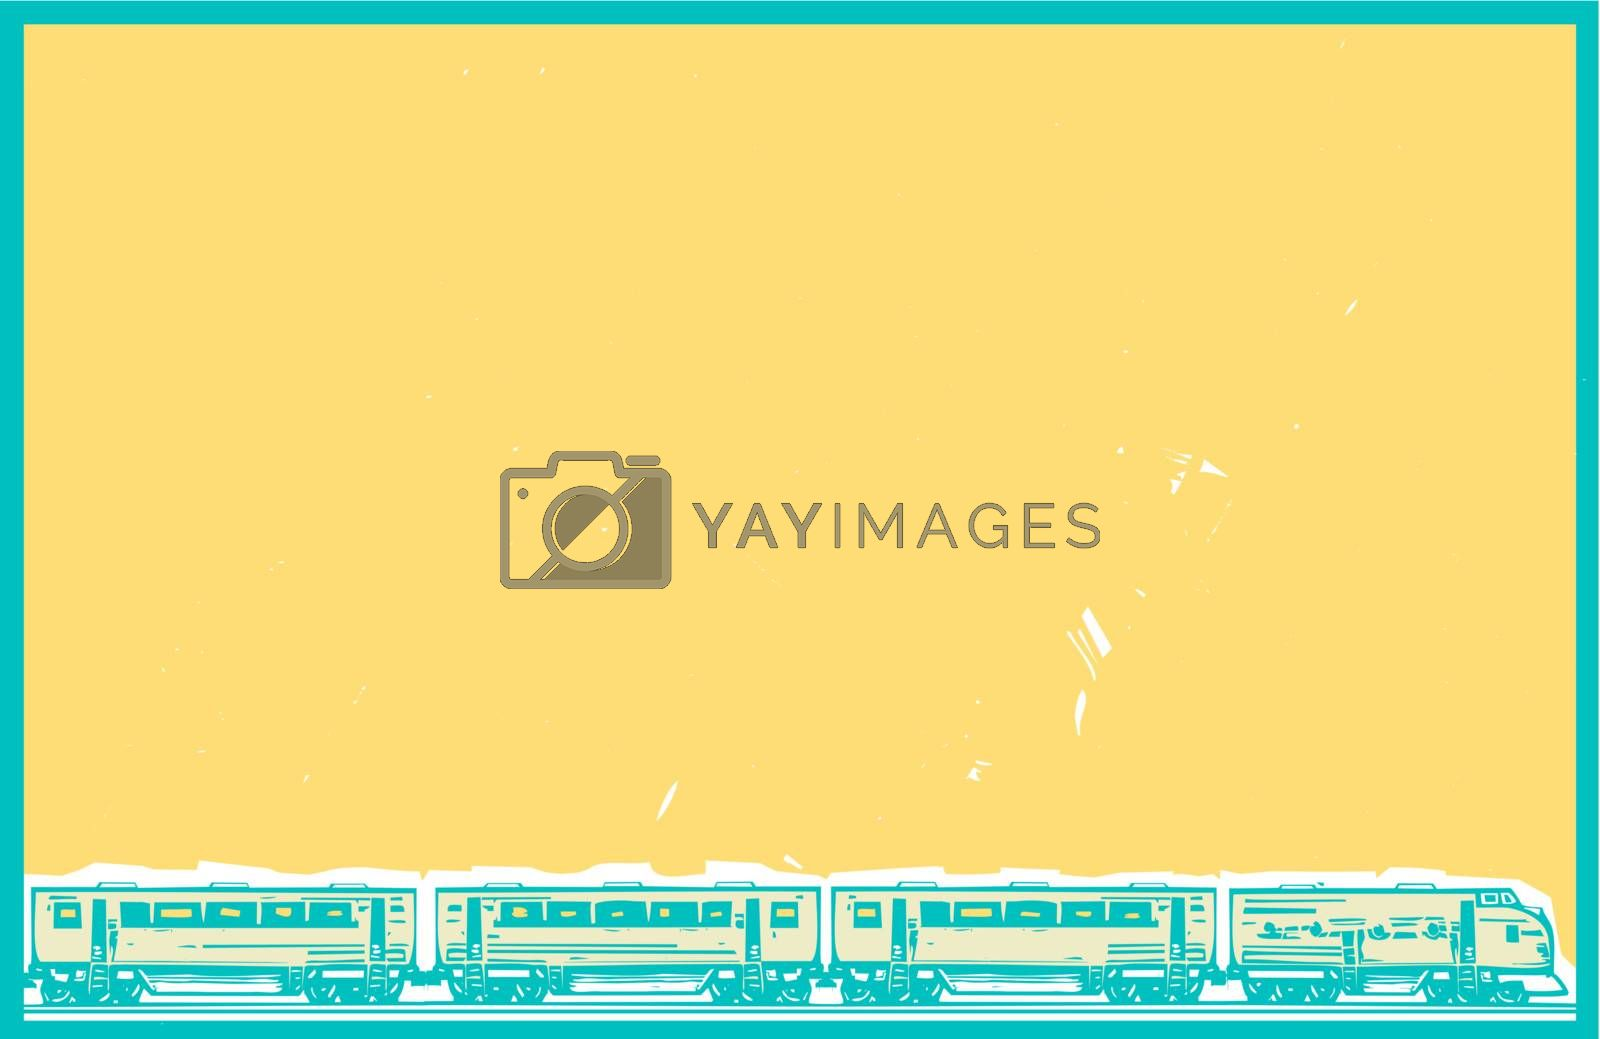 Woodcut style image poster image of a diesel locomotive train with a passenger cars.